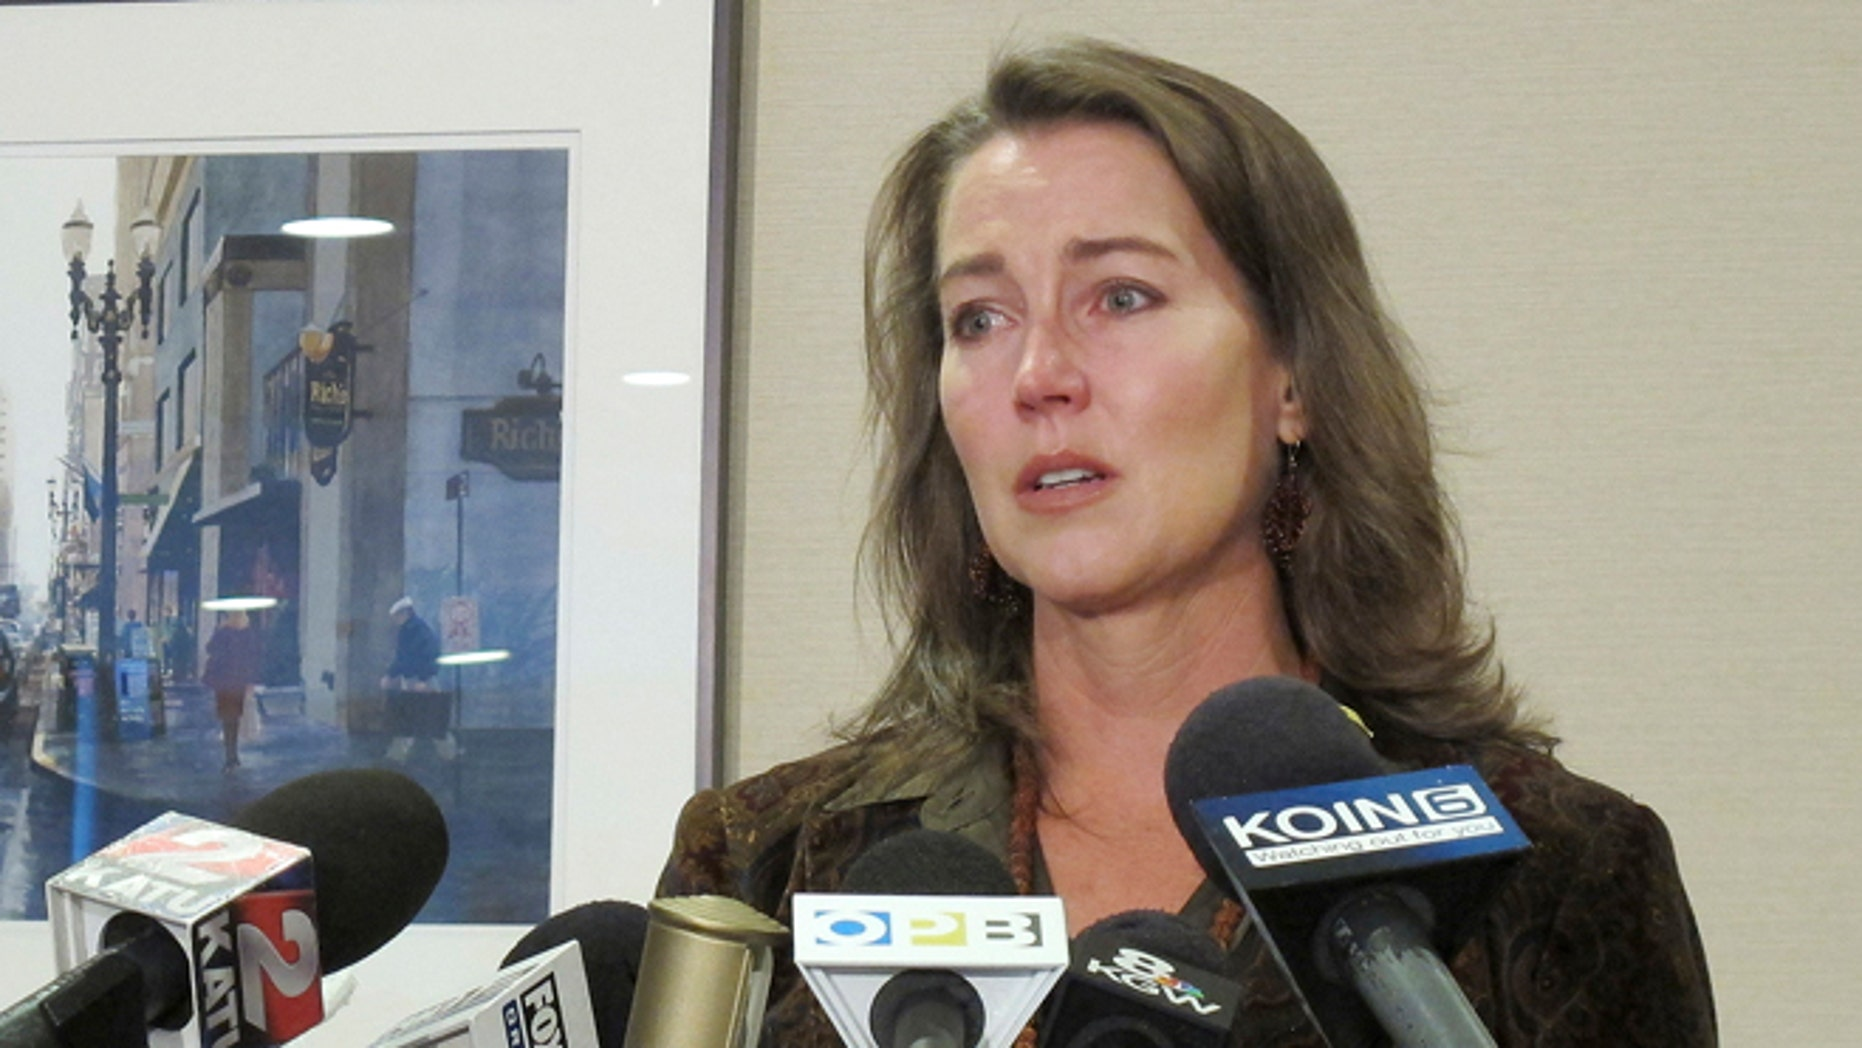 In this Thursday, Oct. 9, 2014 photo, Cylvia Hayes, fiancee of Oregon Gov. John Kitzhaber, speaks at a news conference in Portland, Ore.